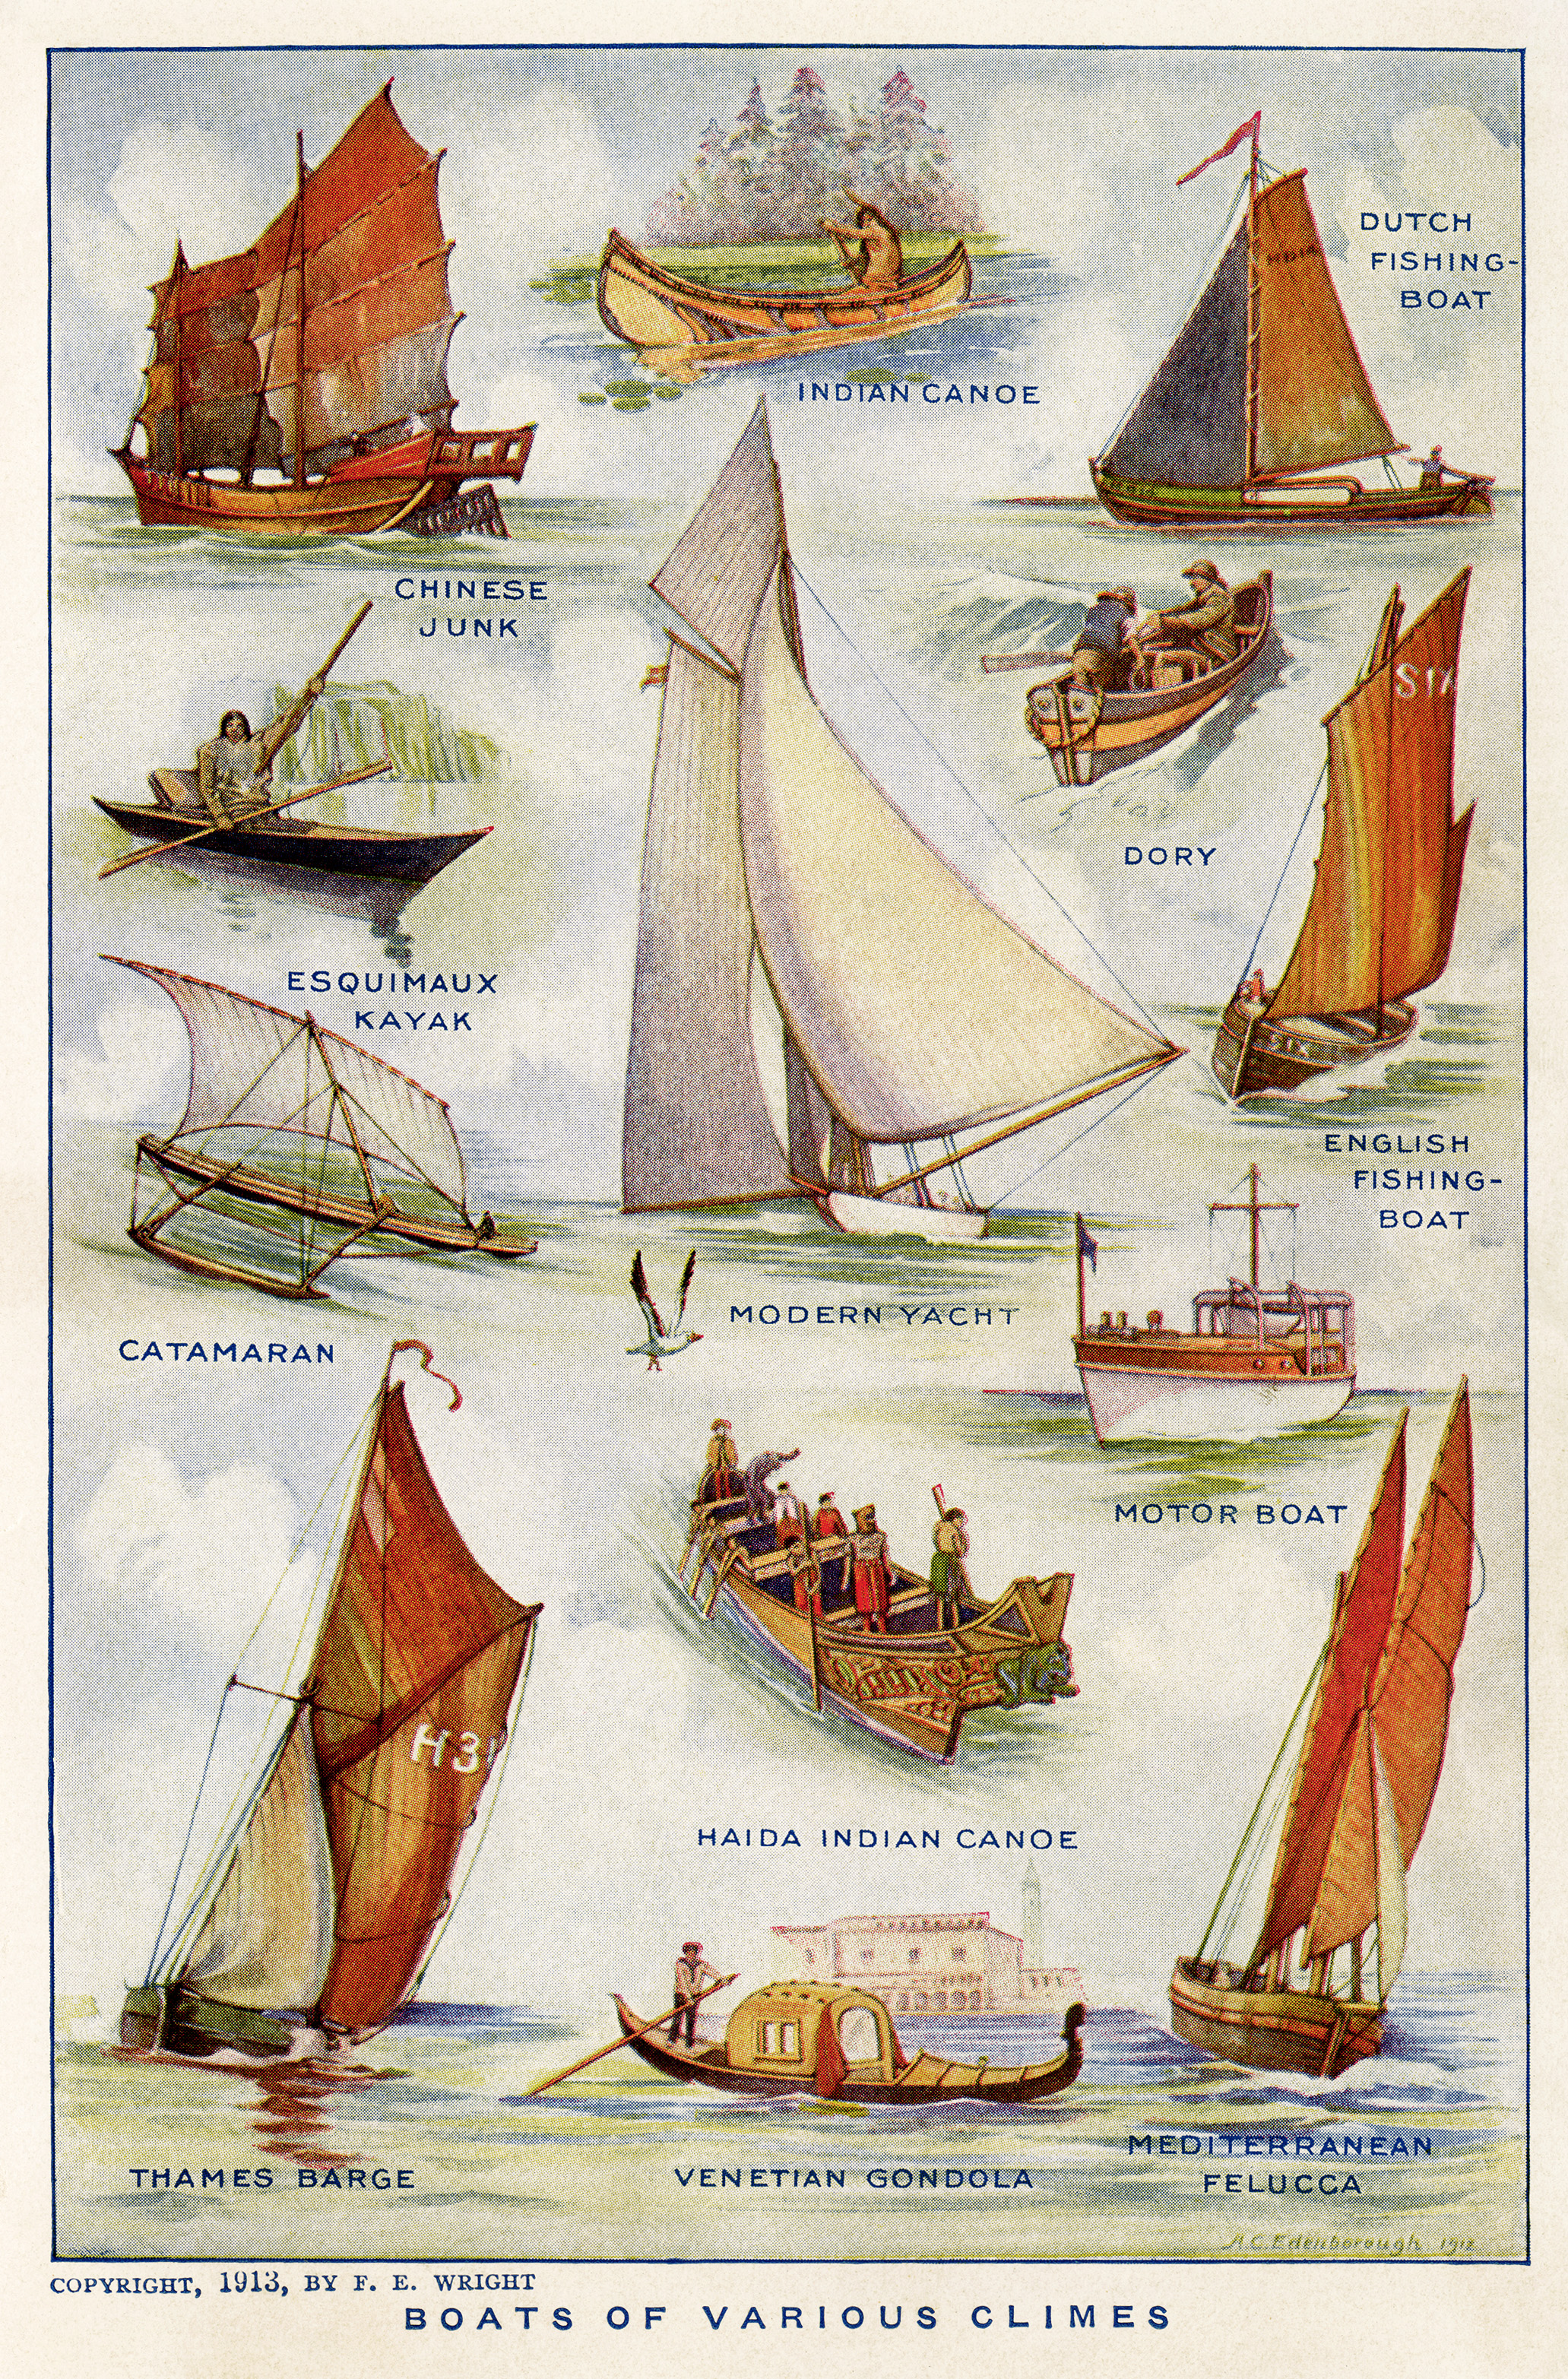 Boats of Various Climes ~ Free Vintage Image